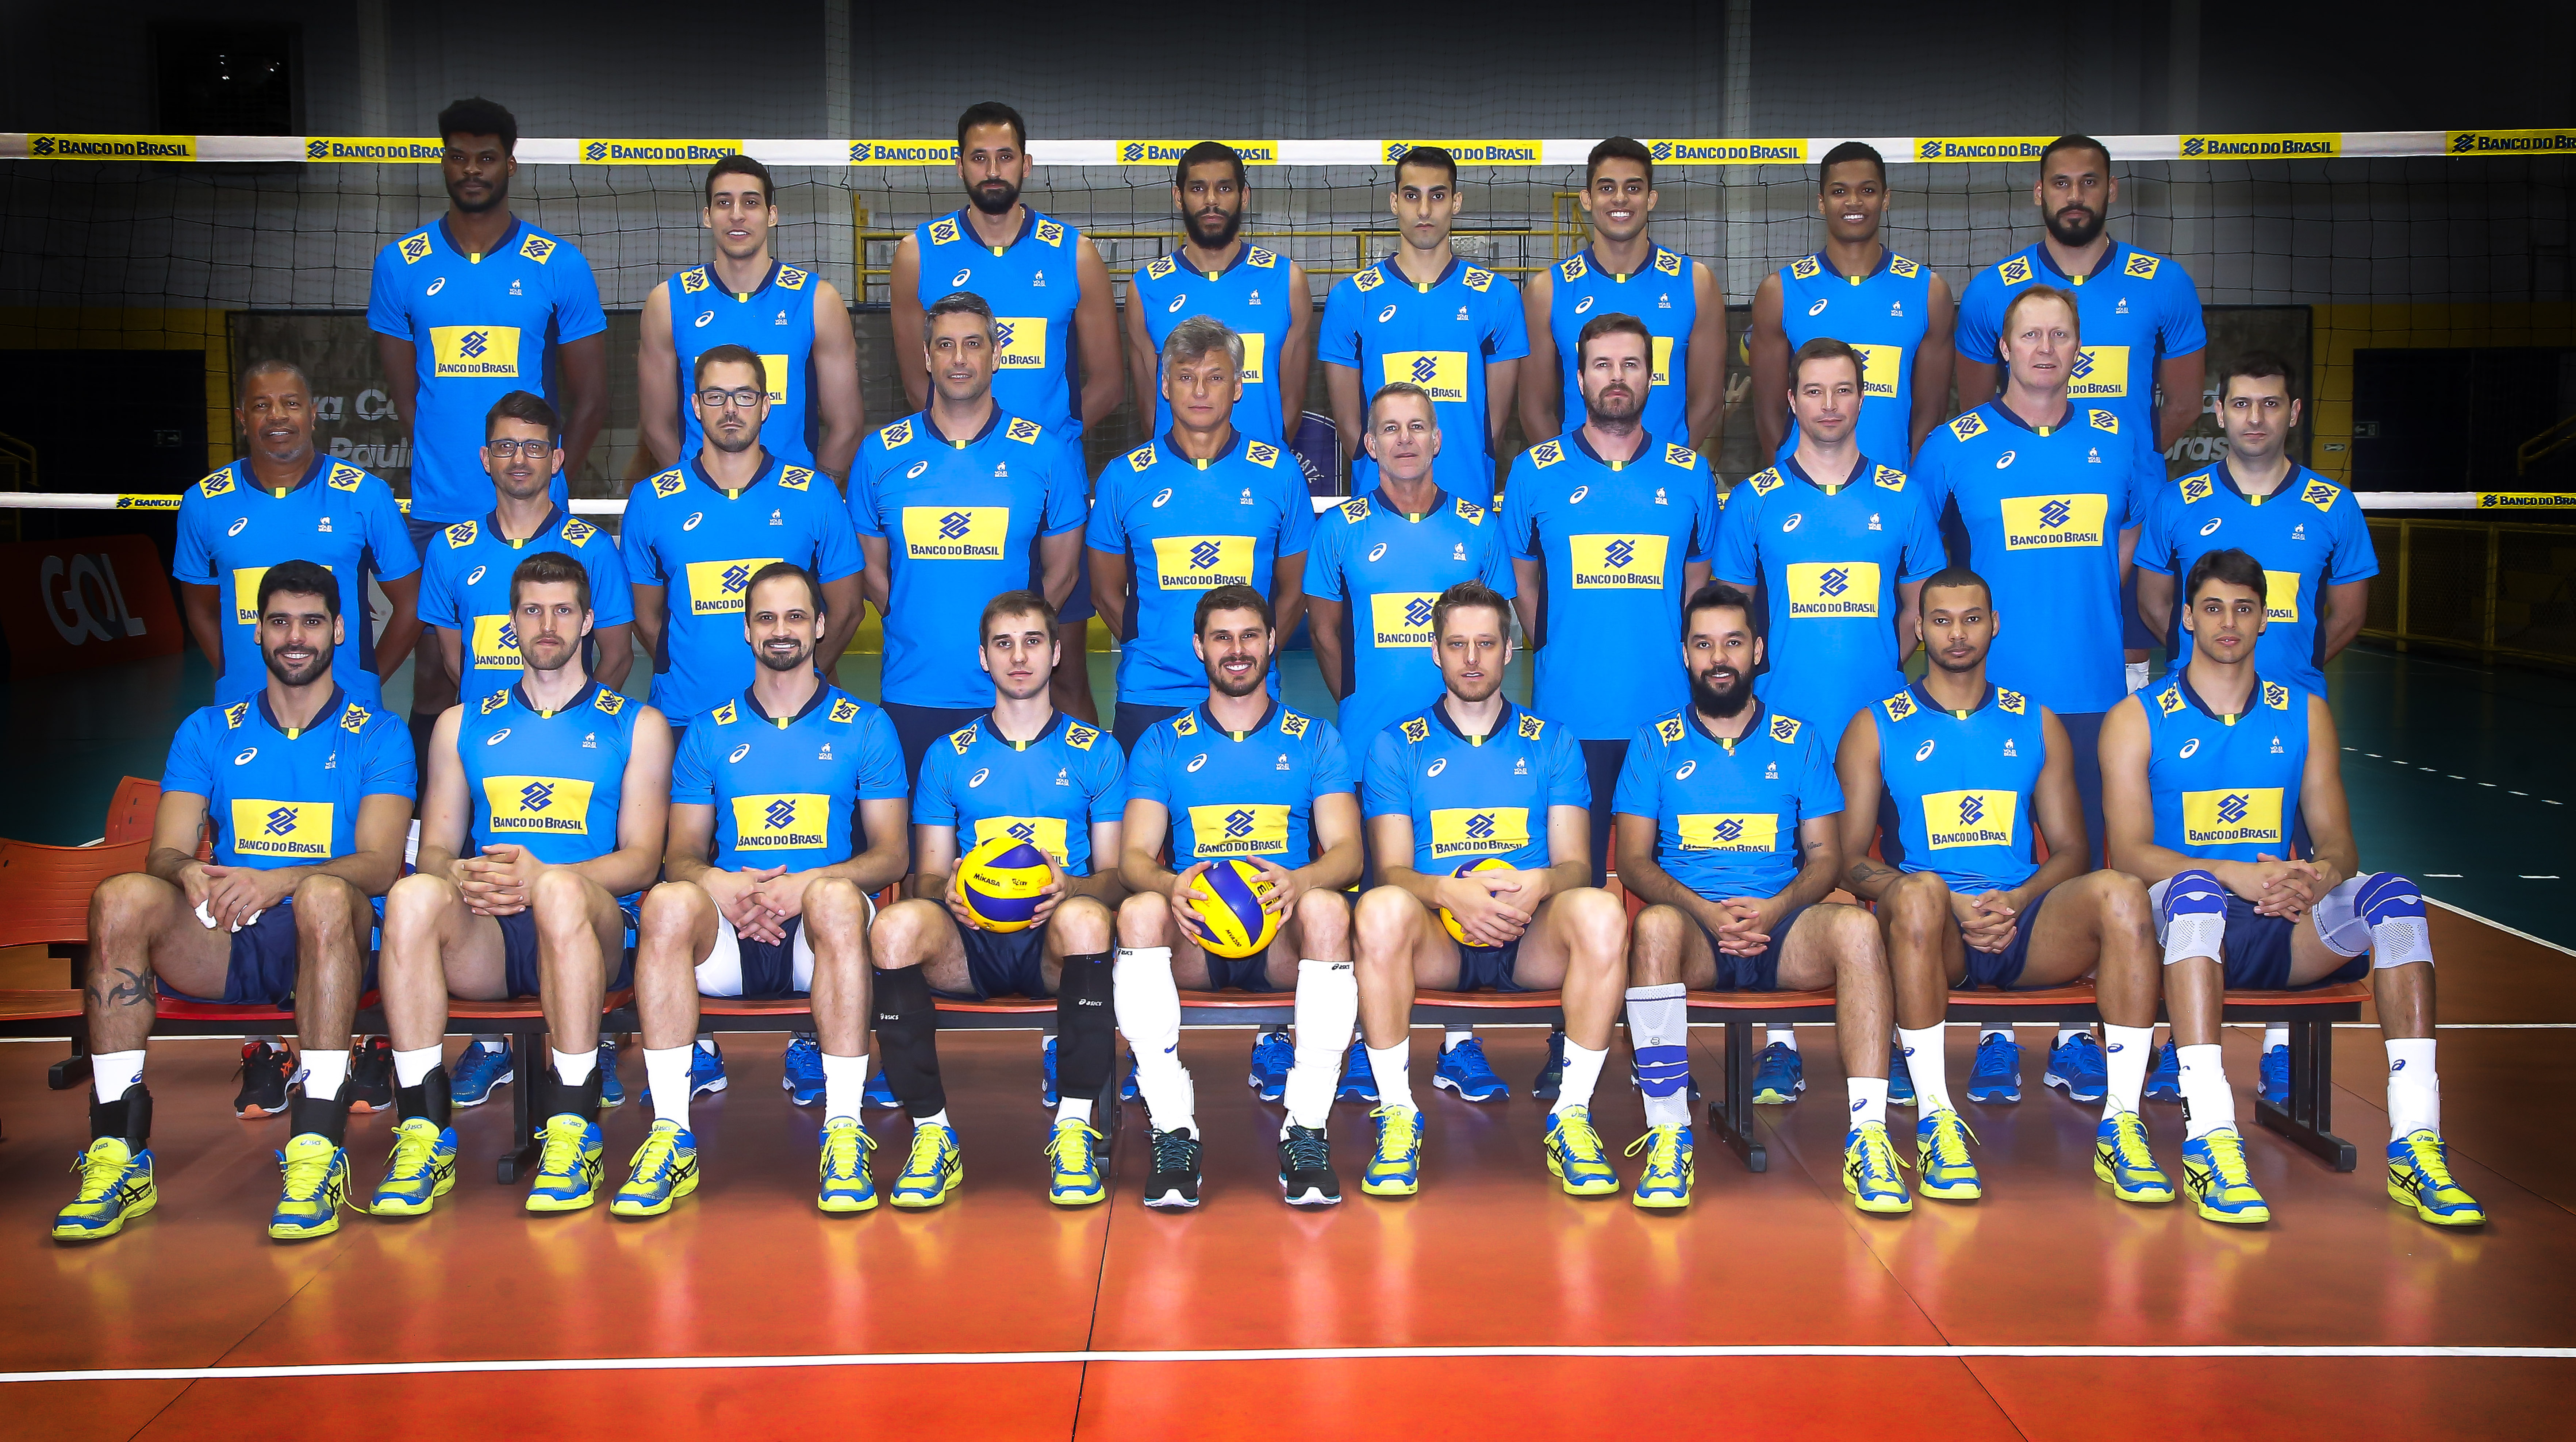 Overview Brazil Fivb Volleyball Men S World Championship Italy And Bulgaria 2018